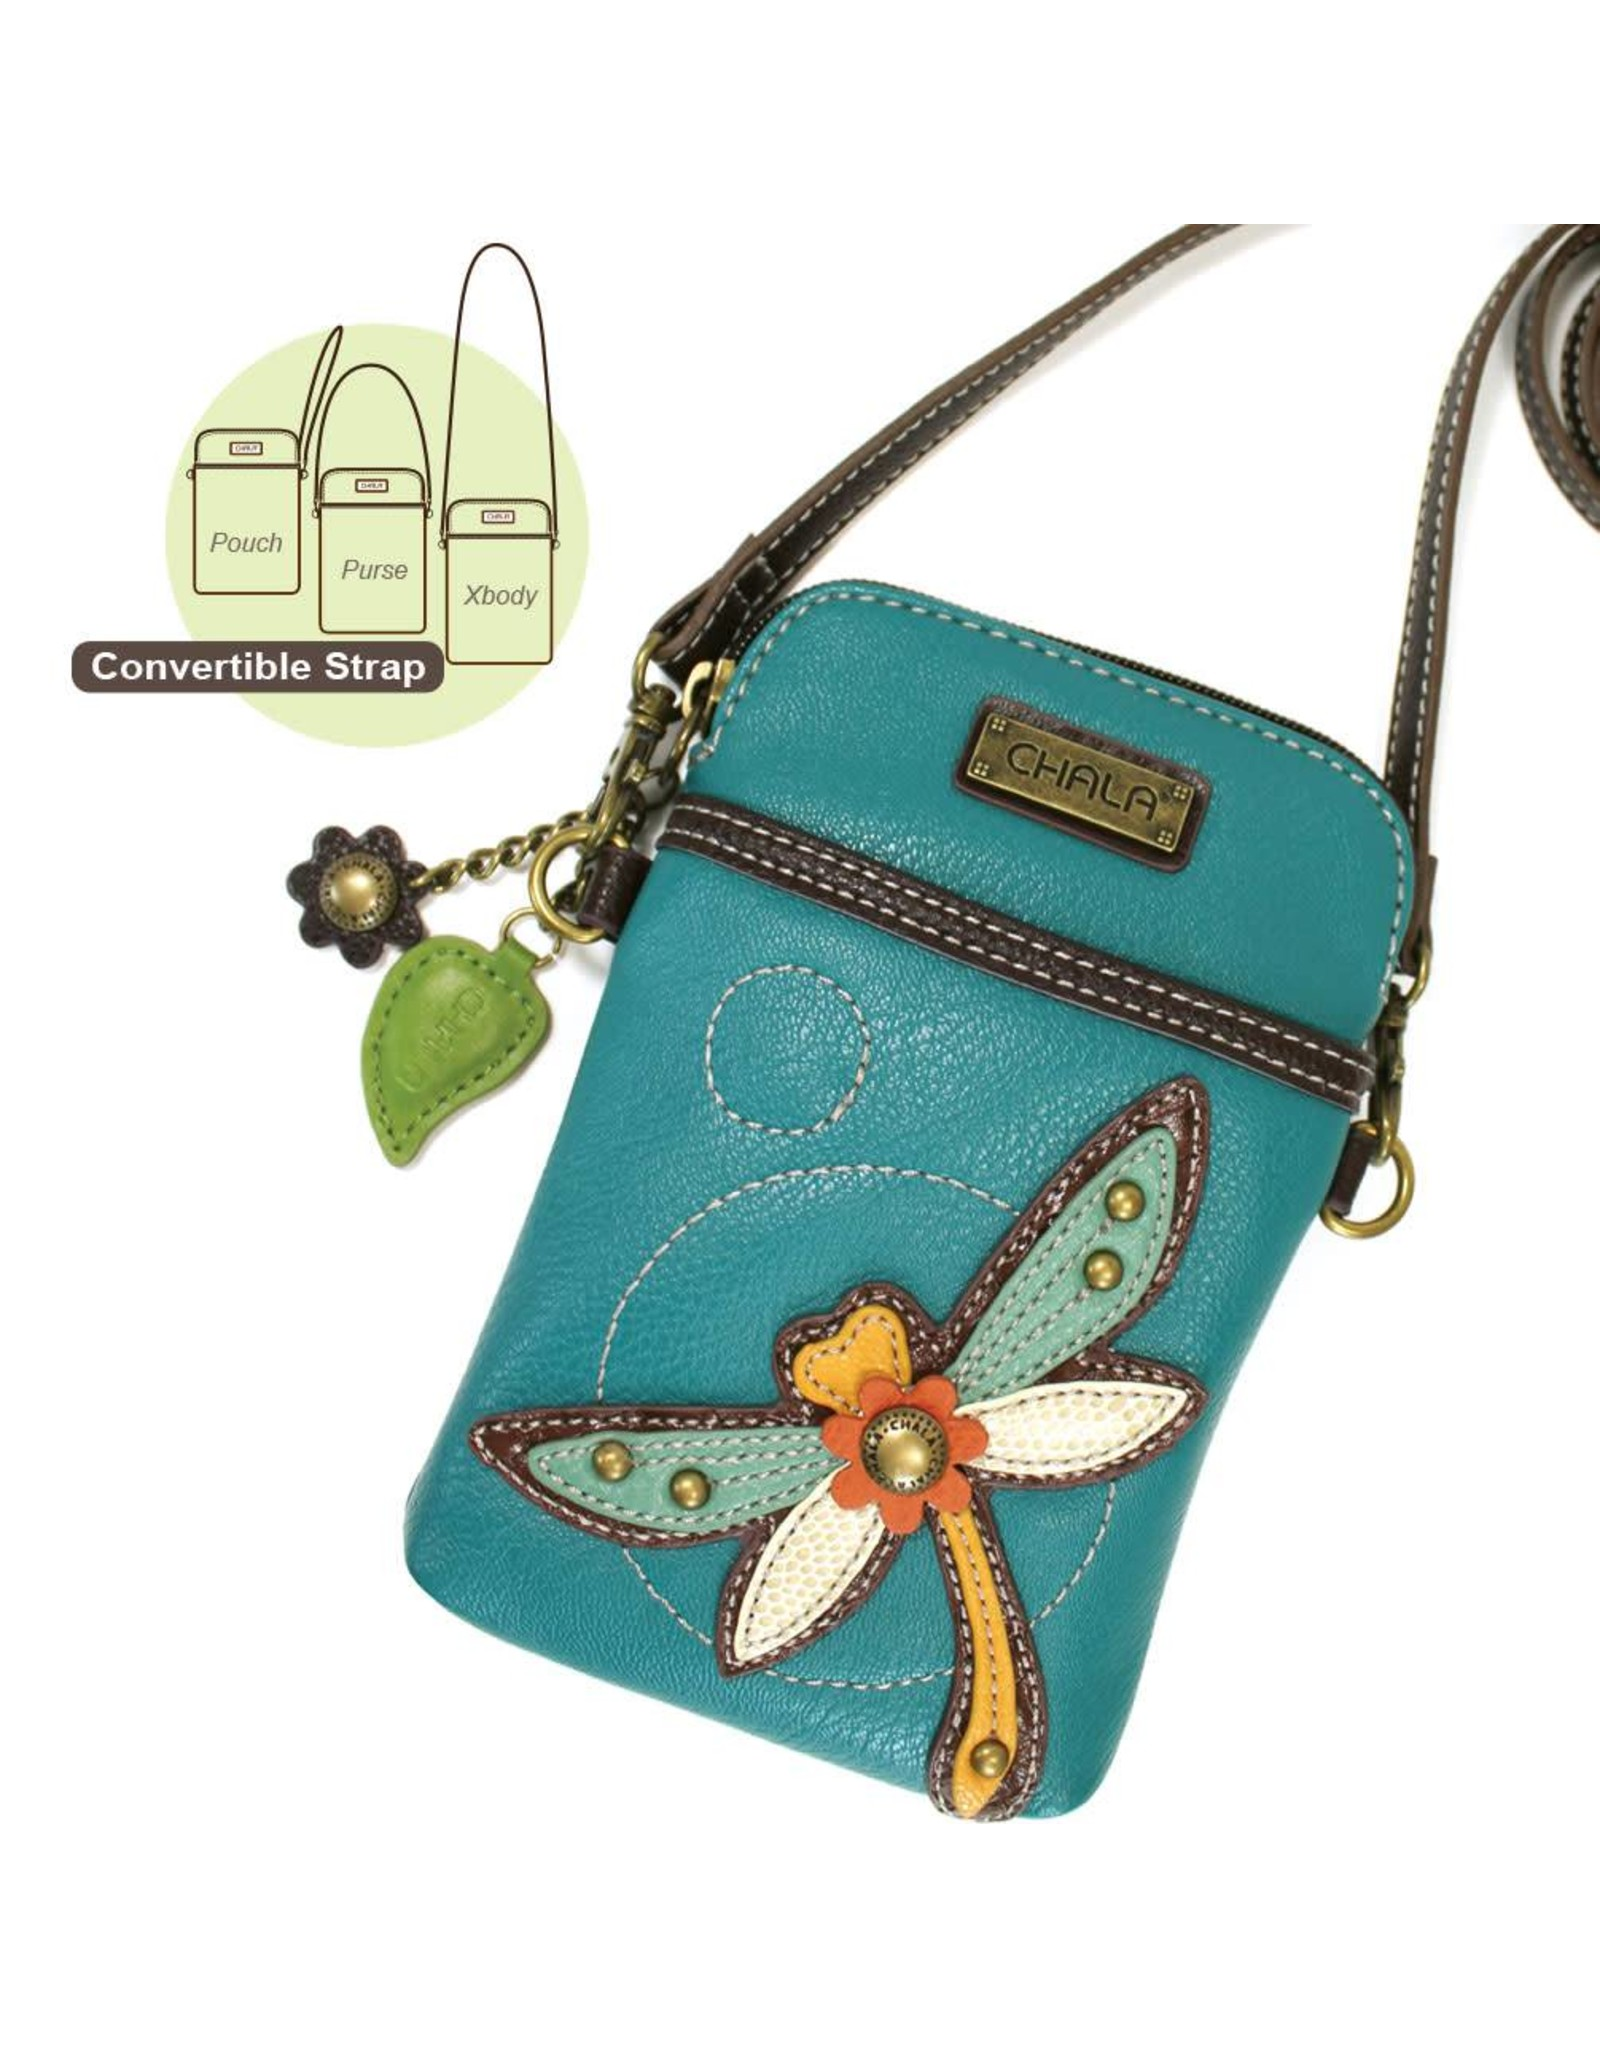 9 Color options Chala Crossbody with Charming Dragonfly Keychain